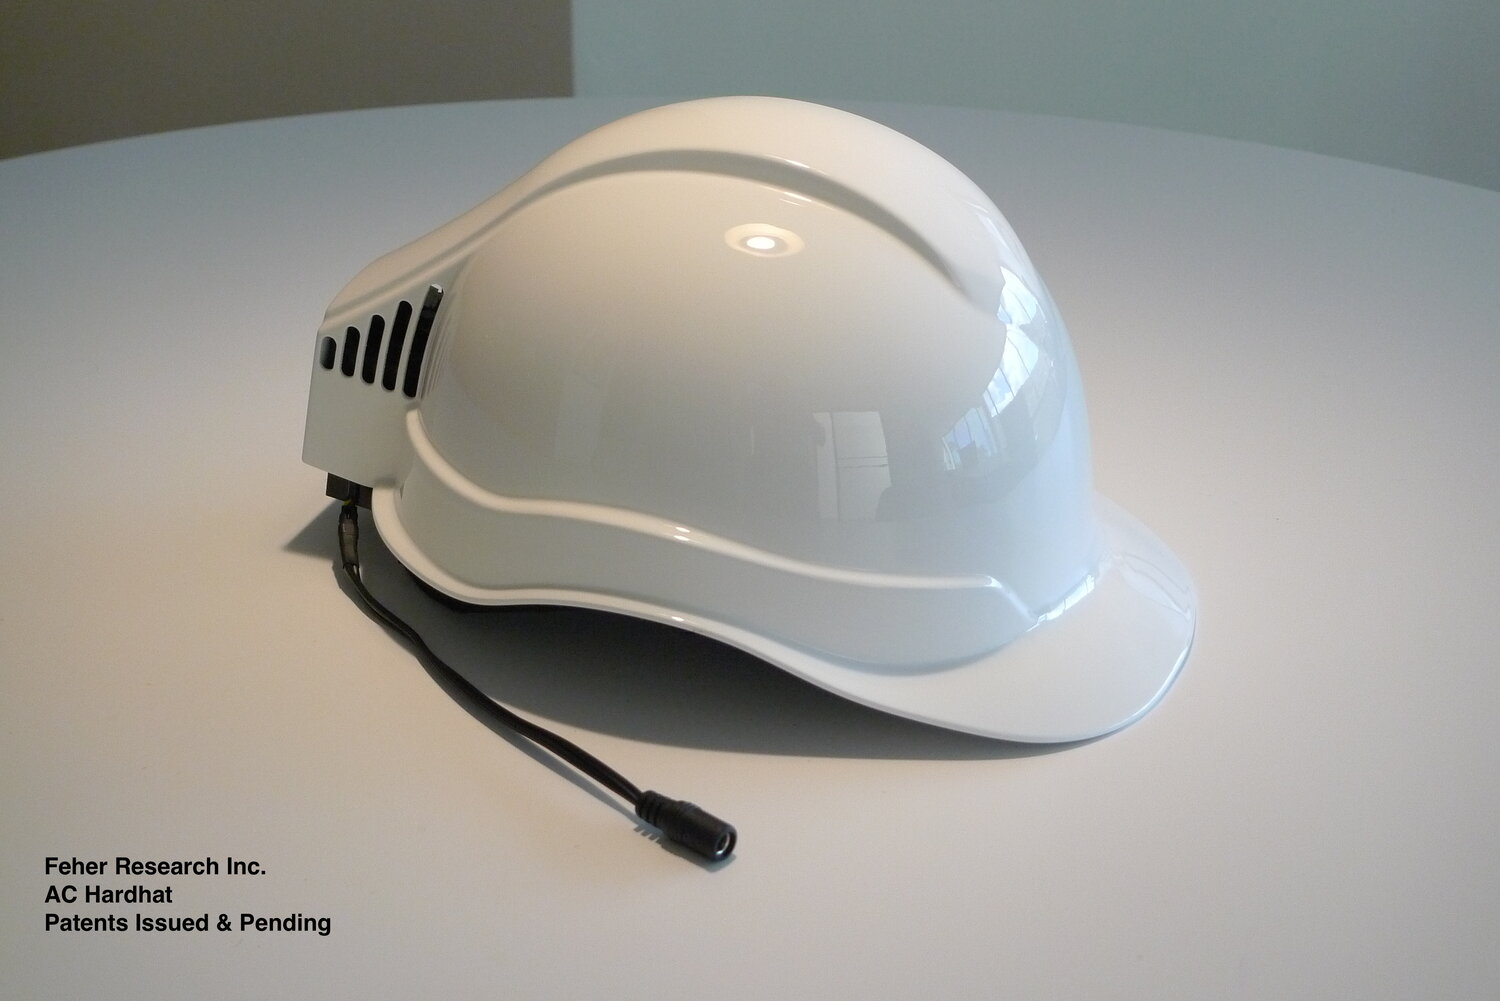 Finally, an Air-Conditioned Hard Hat is on the Horizon